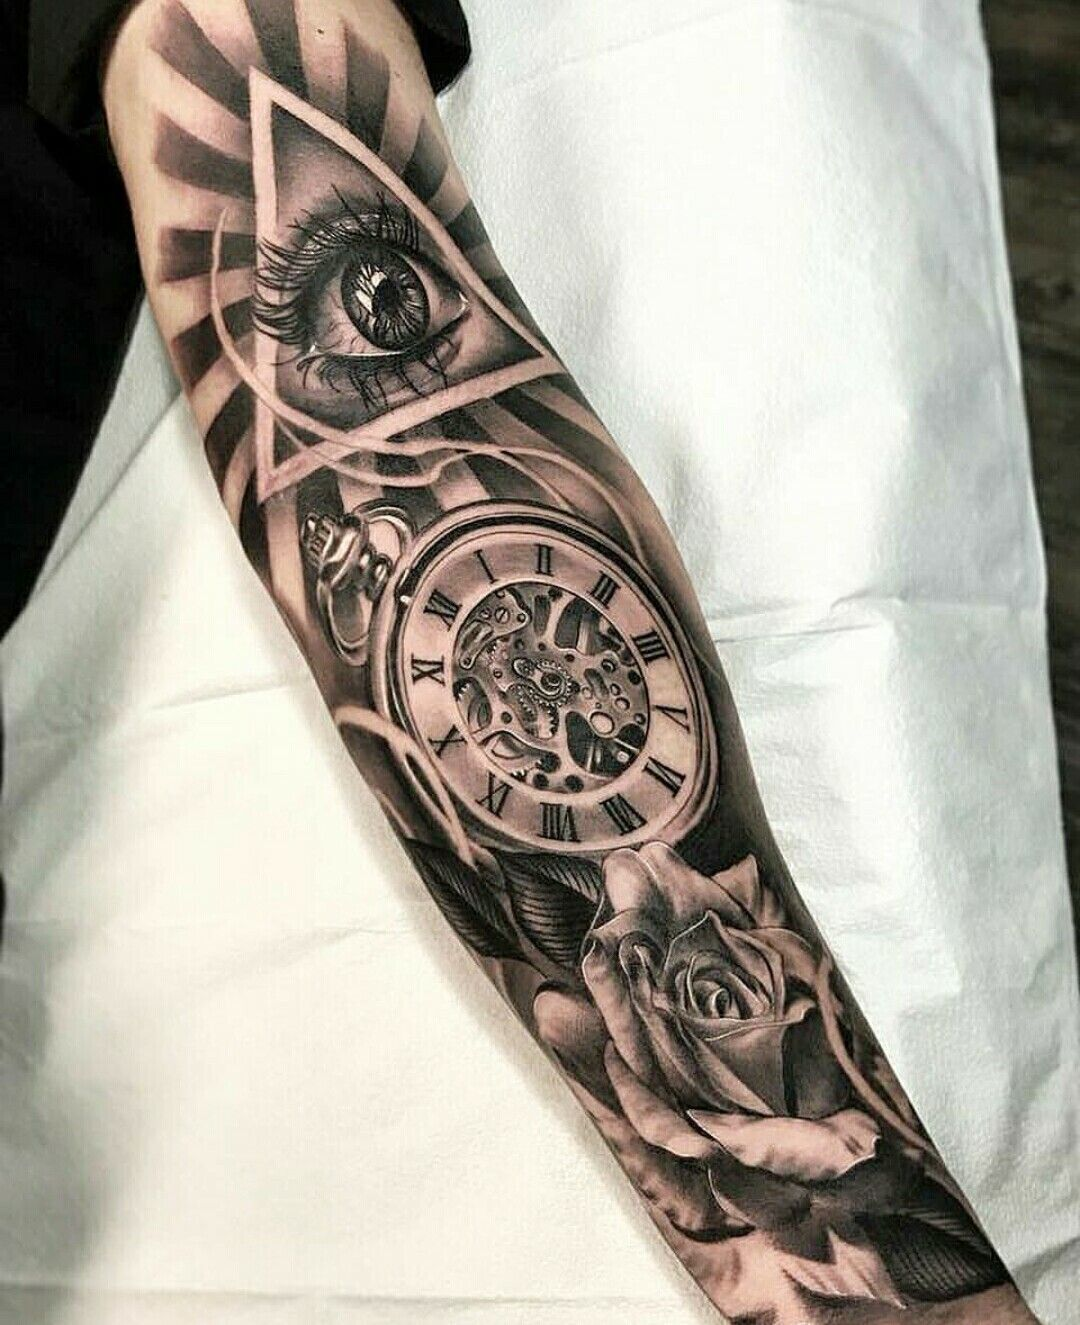 Pin By Kerry Sylvester On Tattoo Ideas: Pin By Tristan Alderson On Tattoo T Tattoos Tattoo